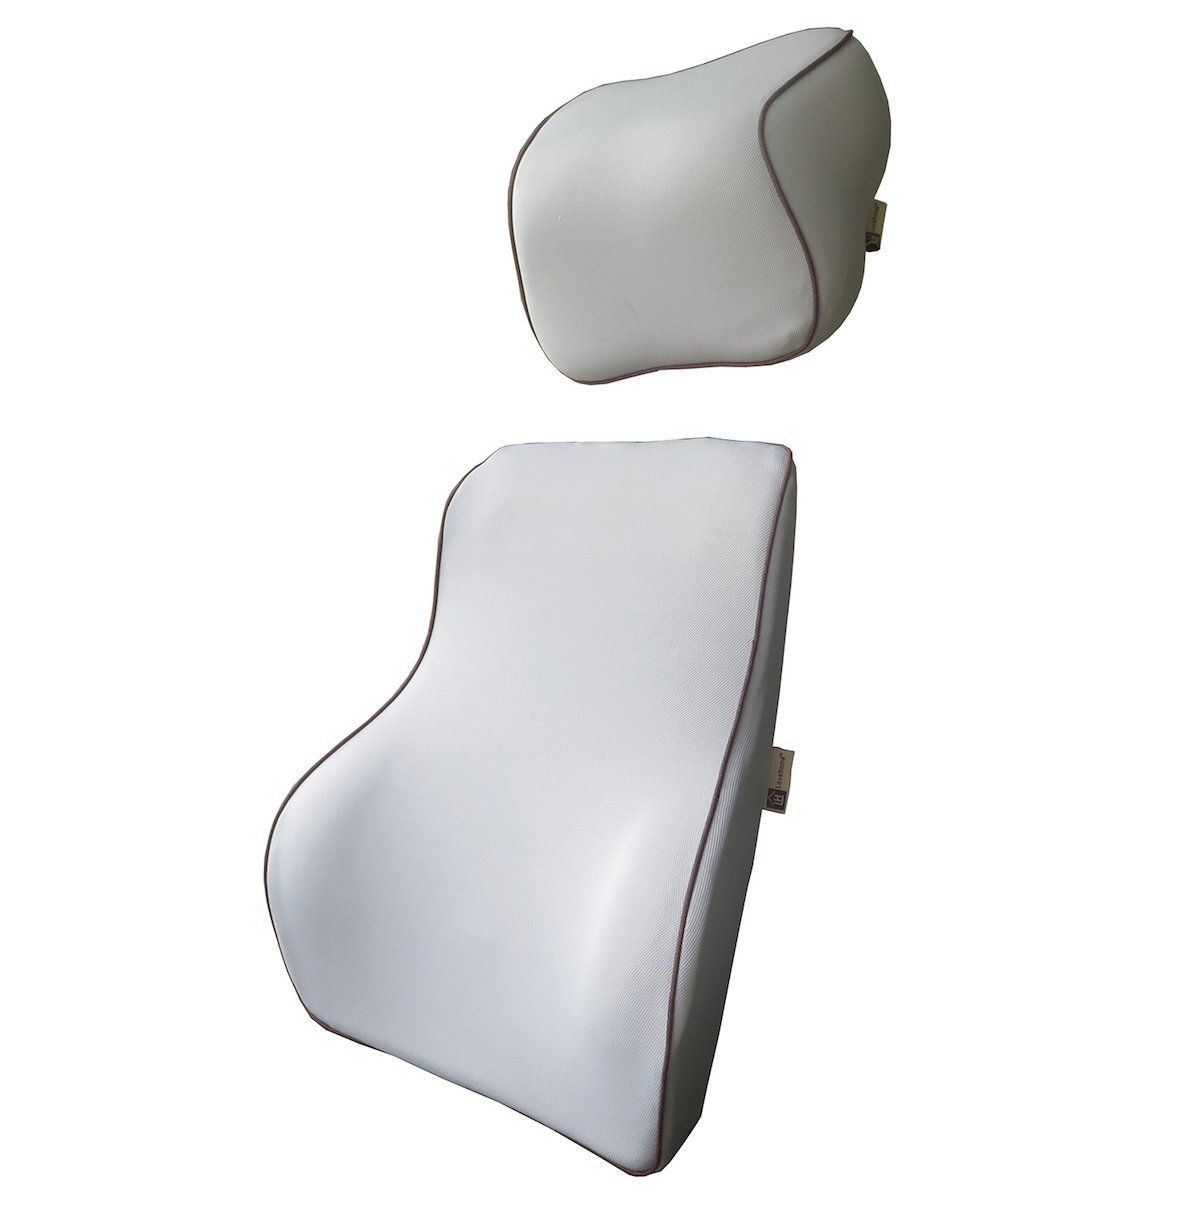 Amazon.com LoveHome Lumbar Support For Car And Headrest Neck Pillow Kit - Ergonomically Design Universal Fit Major Car Seat - Gray Automotive  sc 1 st  Amazon.com & Amazon.com: LoveHome Lumbar Support For Car And Headrest Neck Pillow ...